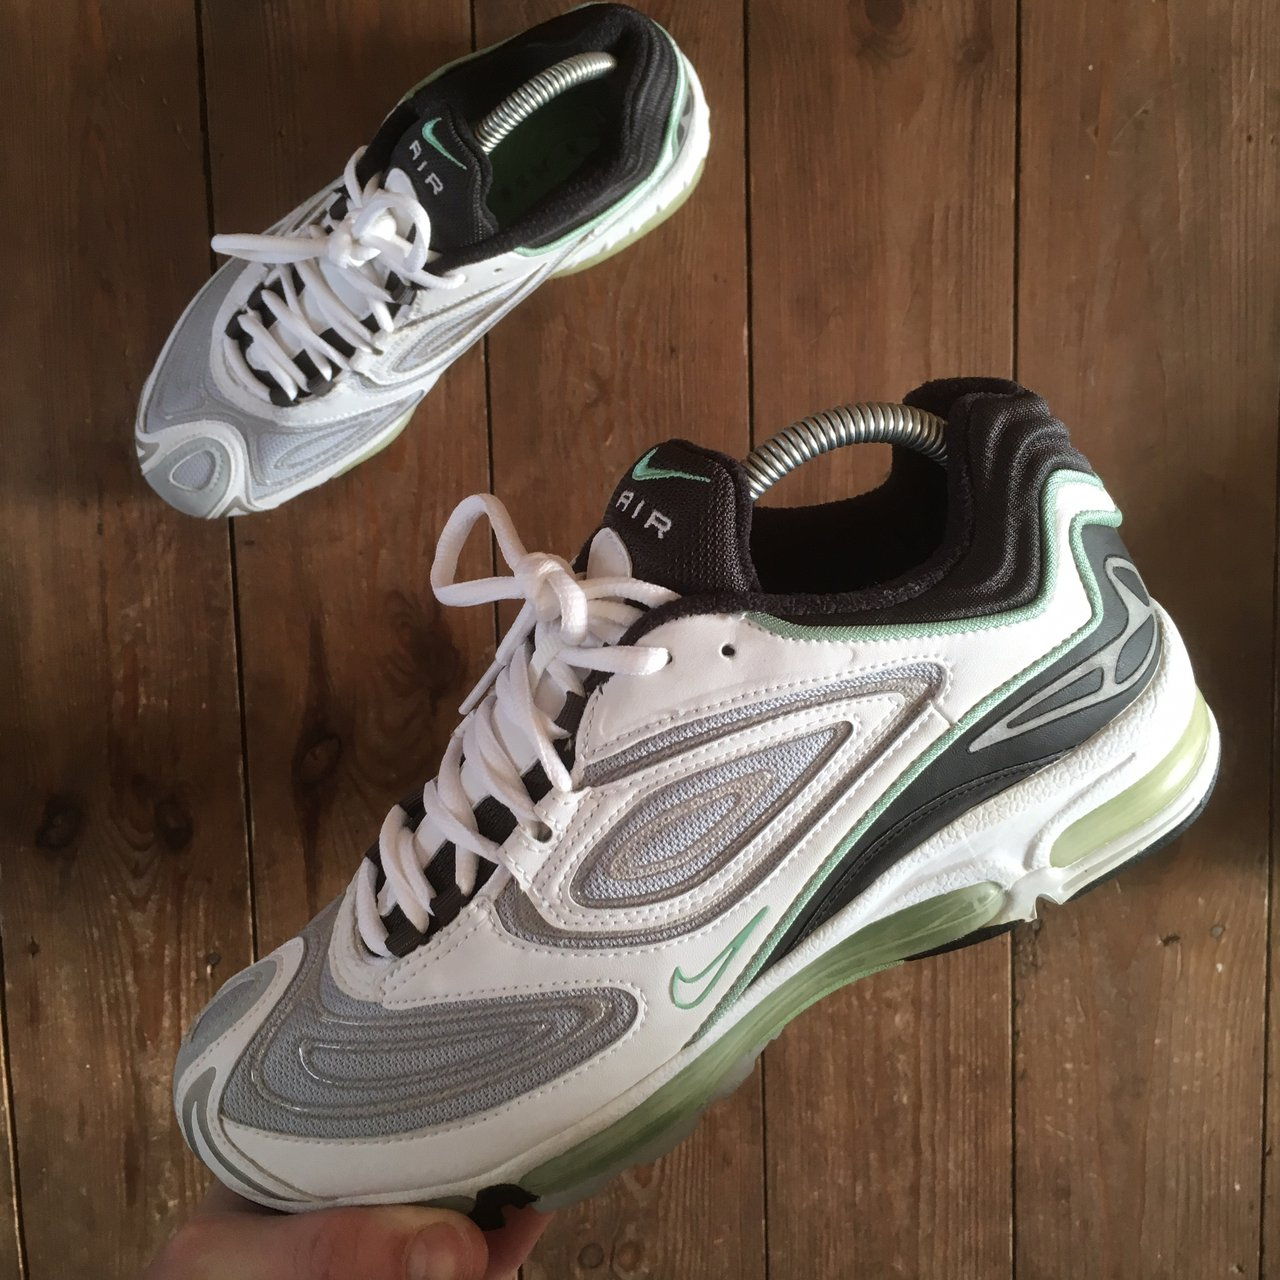 brand new 22371 a89d0 Nike Air Max TL 98 Enamel Green Size  6.5uk Condition  10 10 - Depop